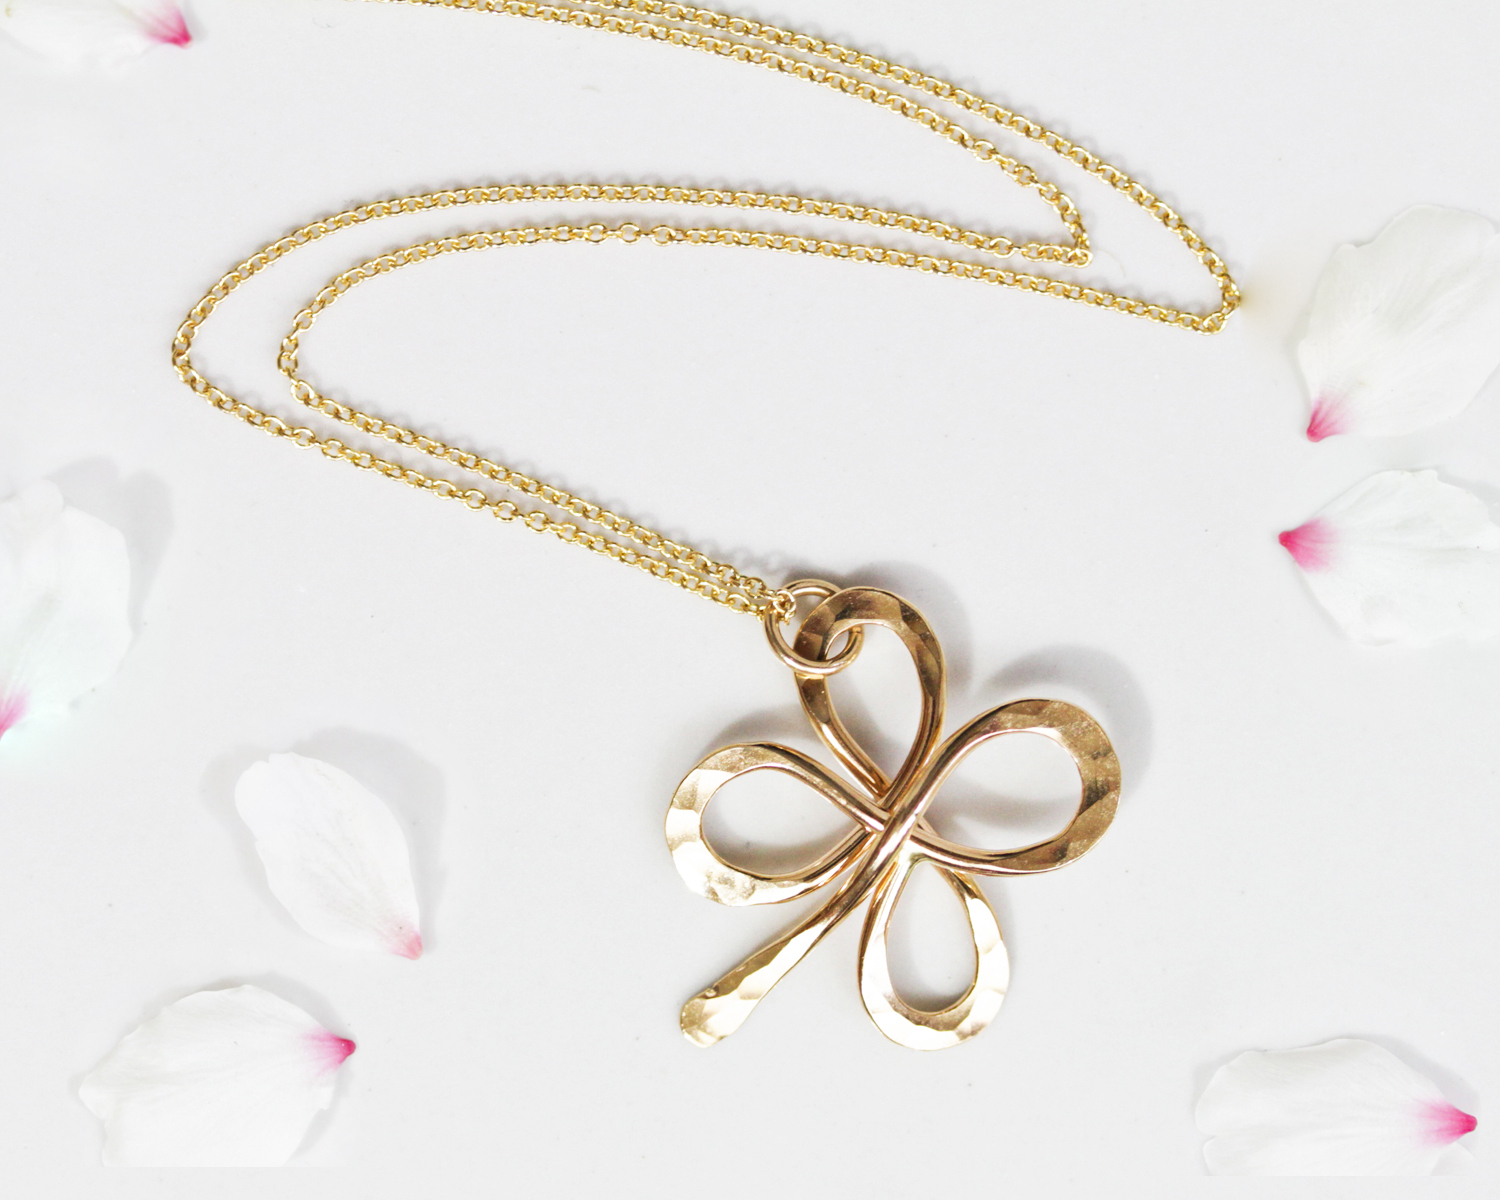 Gold Lucky Four Leaf Clover Necklace With Regard To Recent Lucky Four Leaf Clover Dangle Charm Necklaces (View 13 of 25)